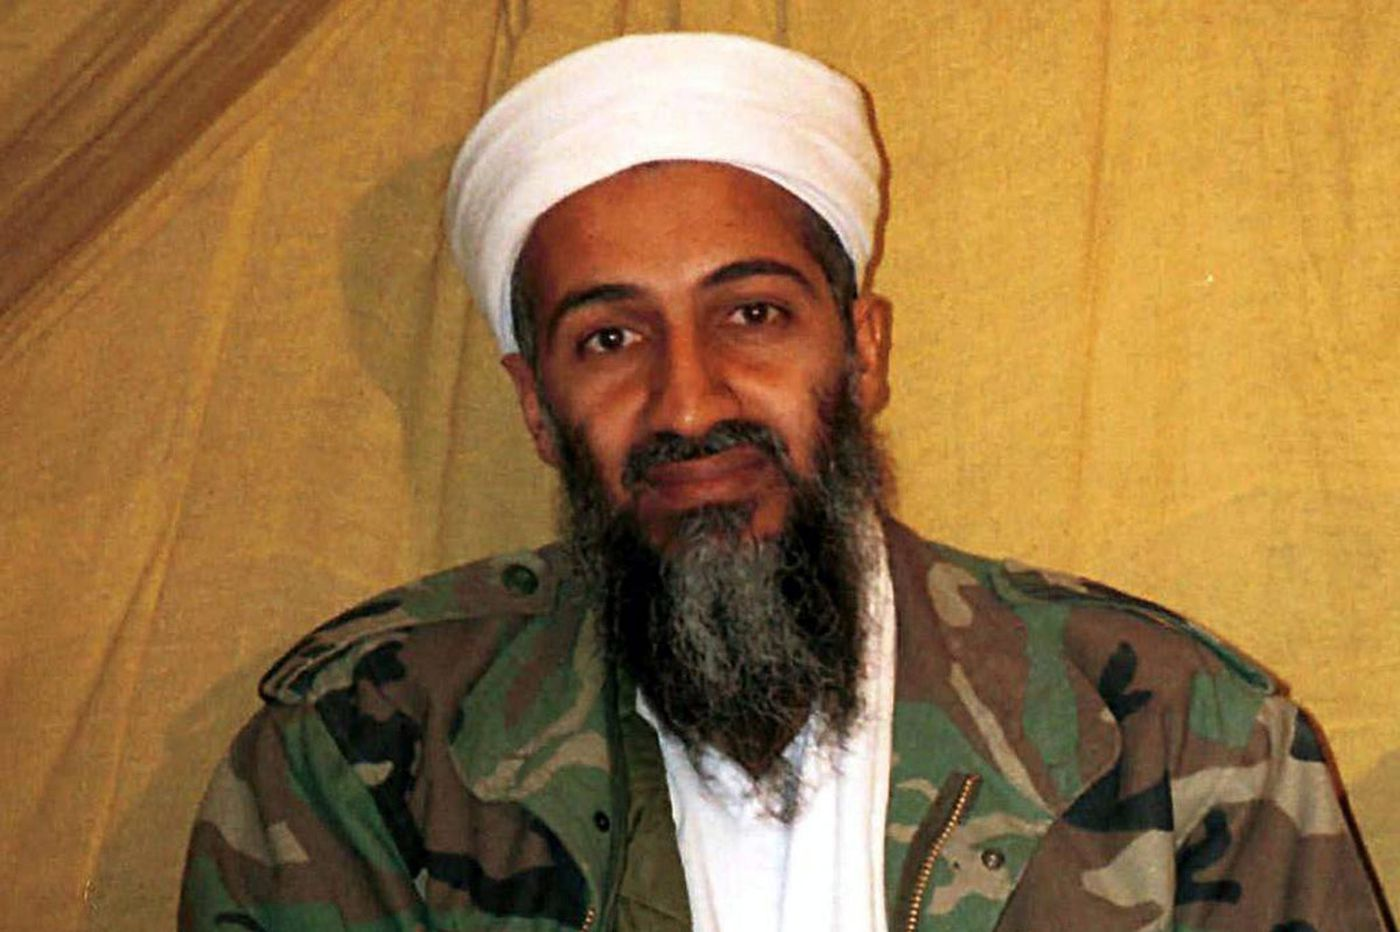 Osama bin Laden's video collection included 'Where in the World Is Osama bin Laden?'